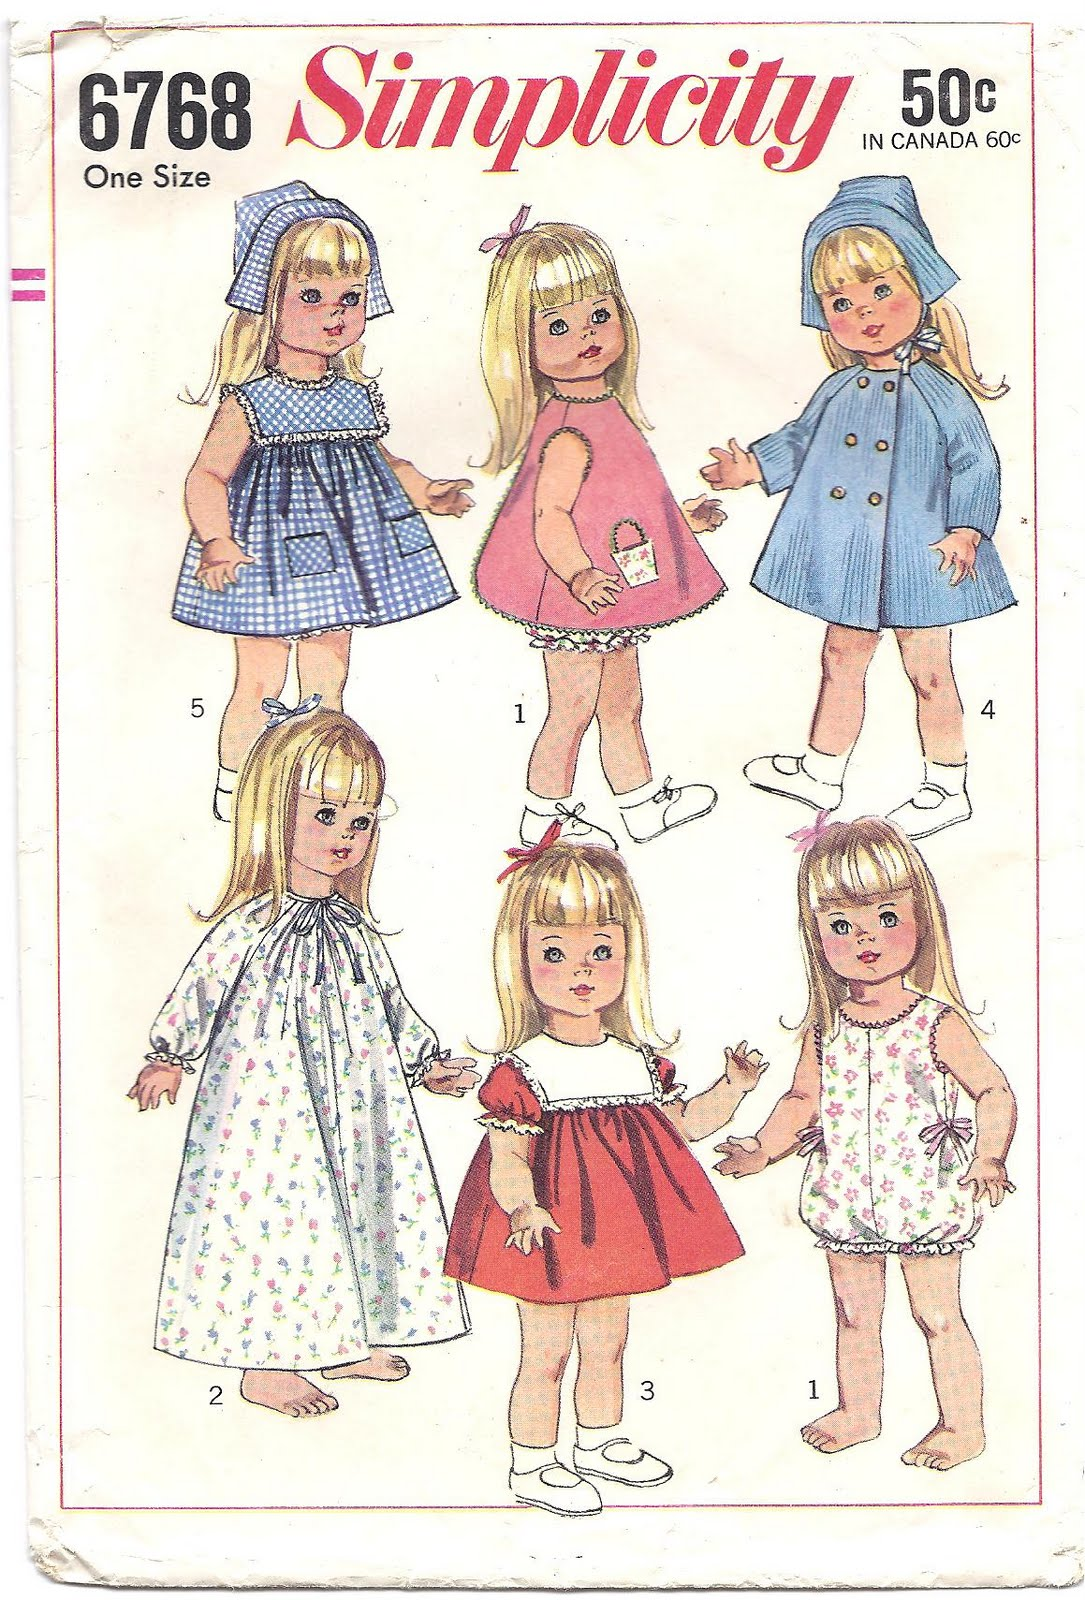 ... doll - free kid's craft printable barbie doll sewing patterns | crazy